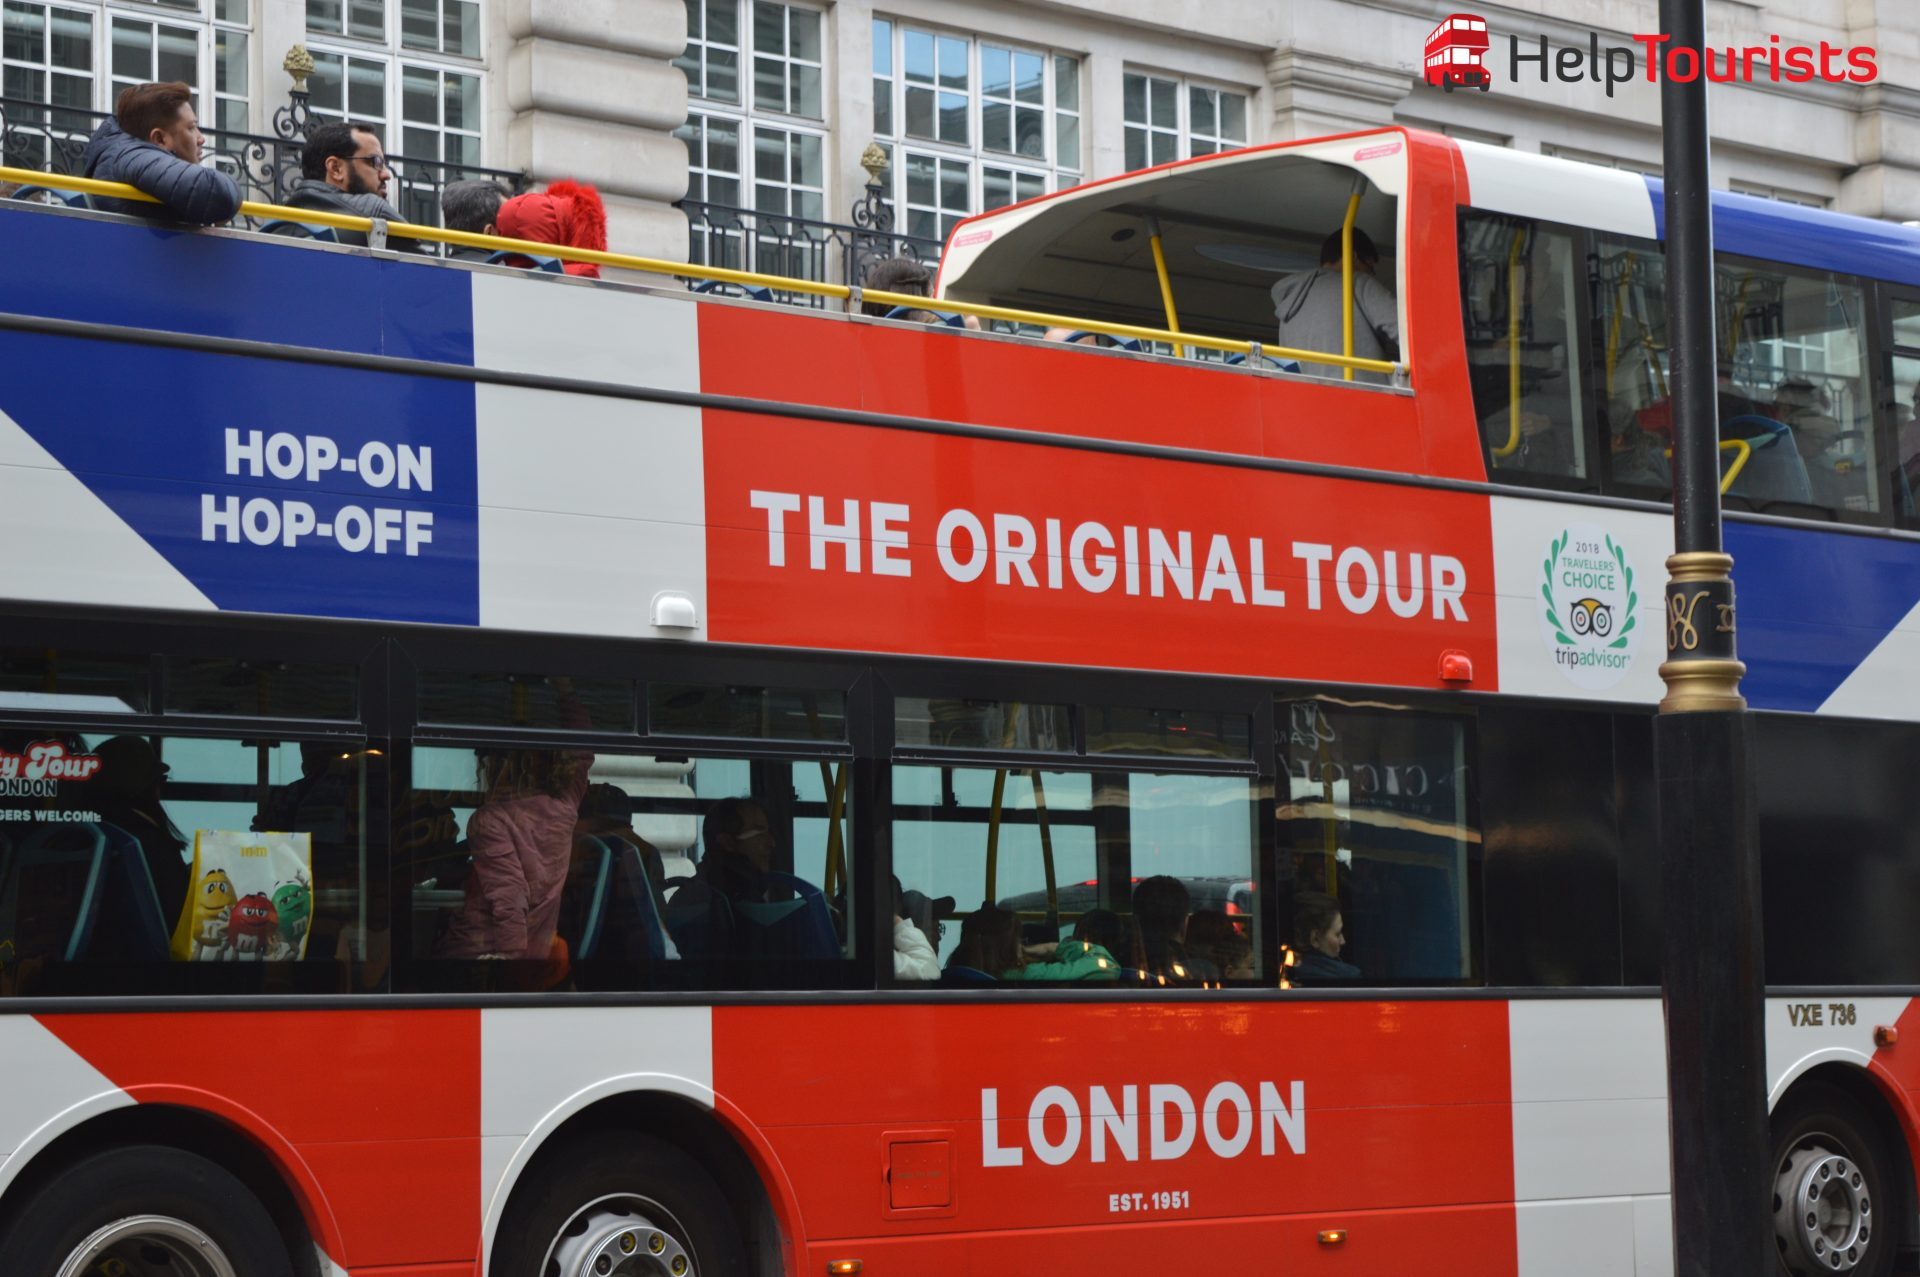 The Original Tour London Hop on hop off